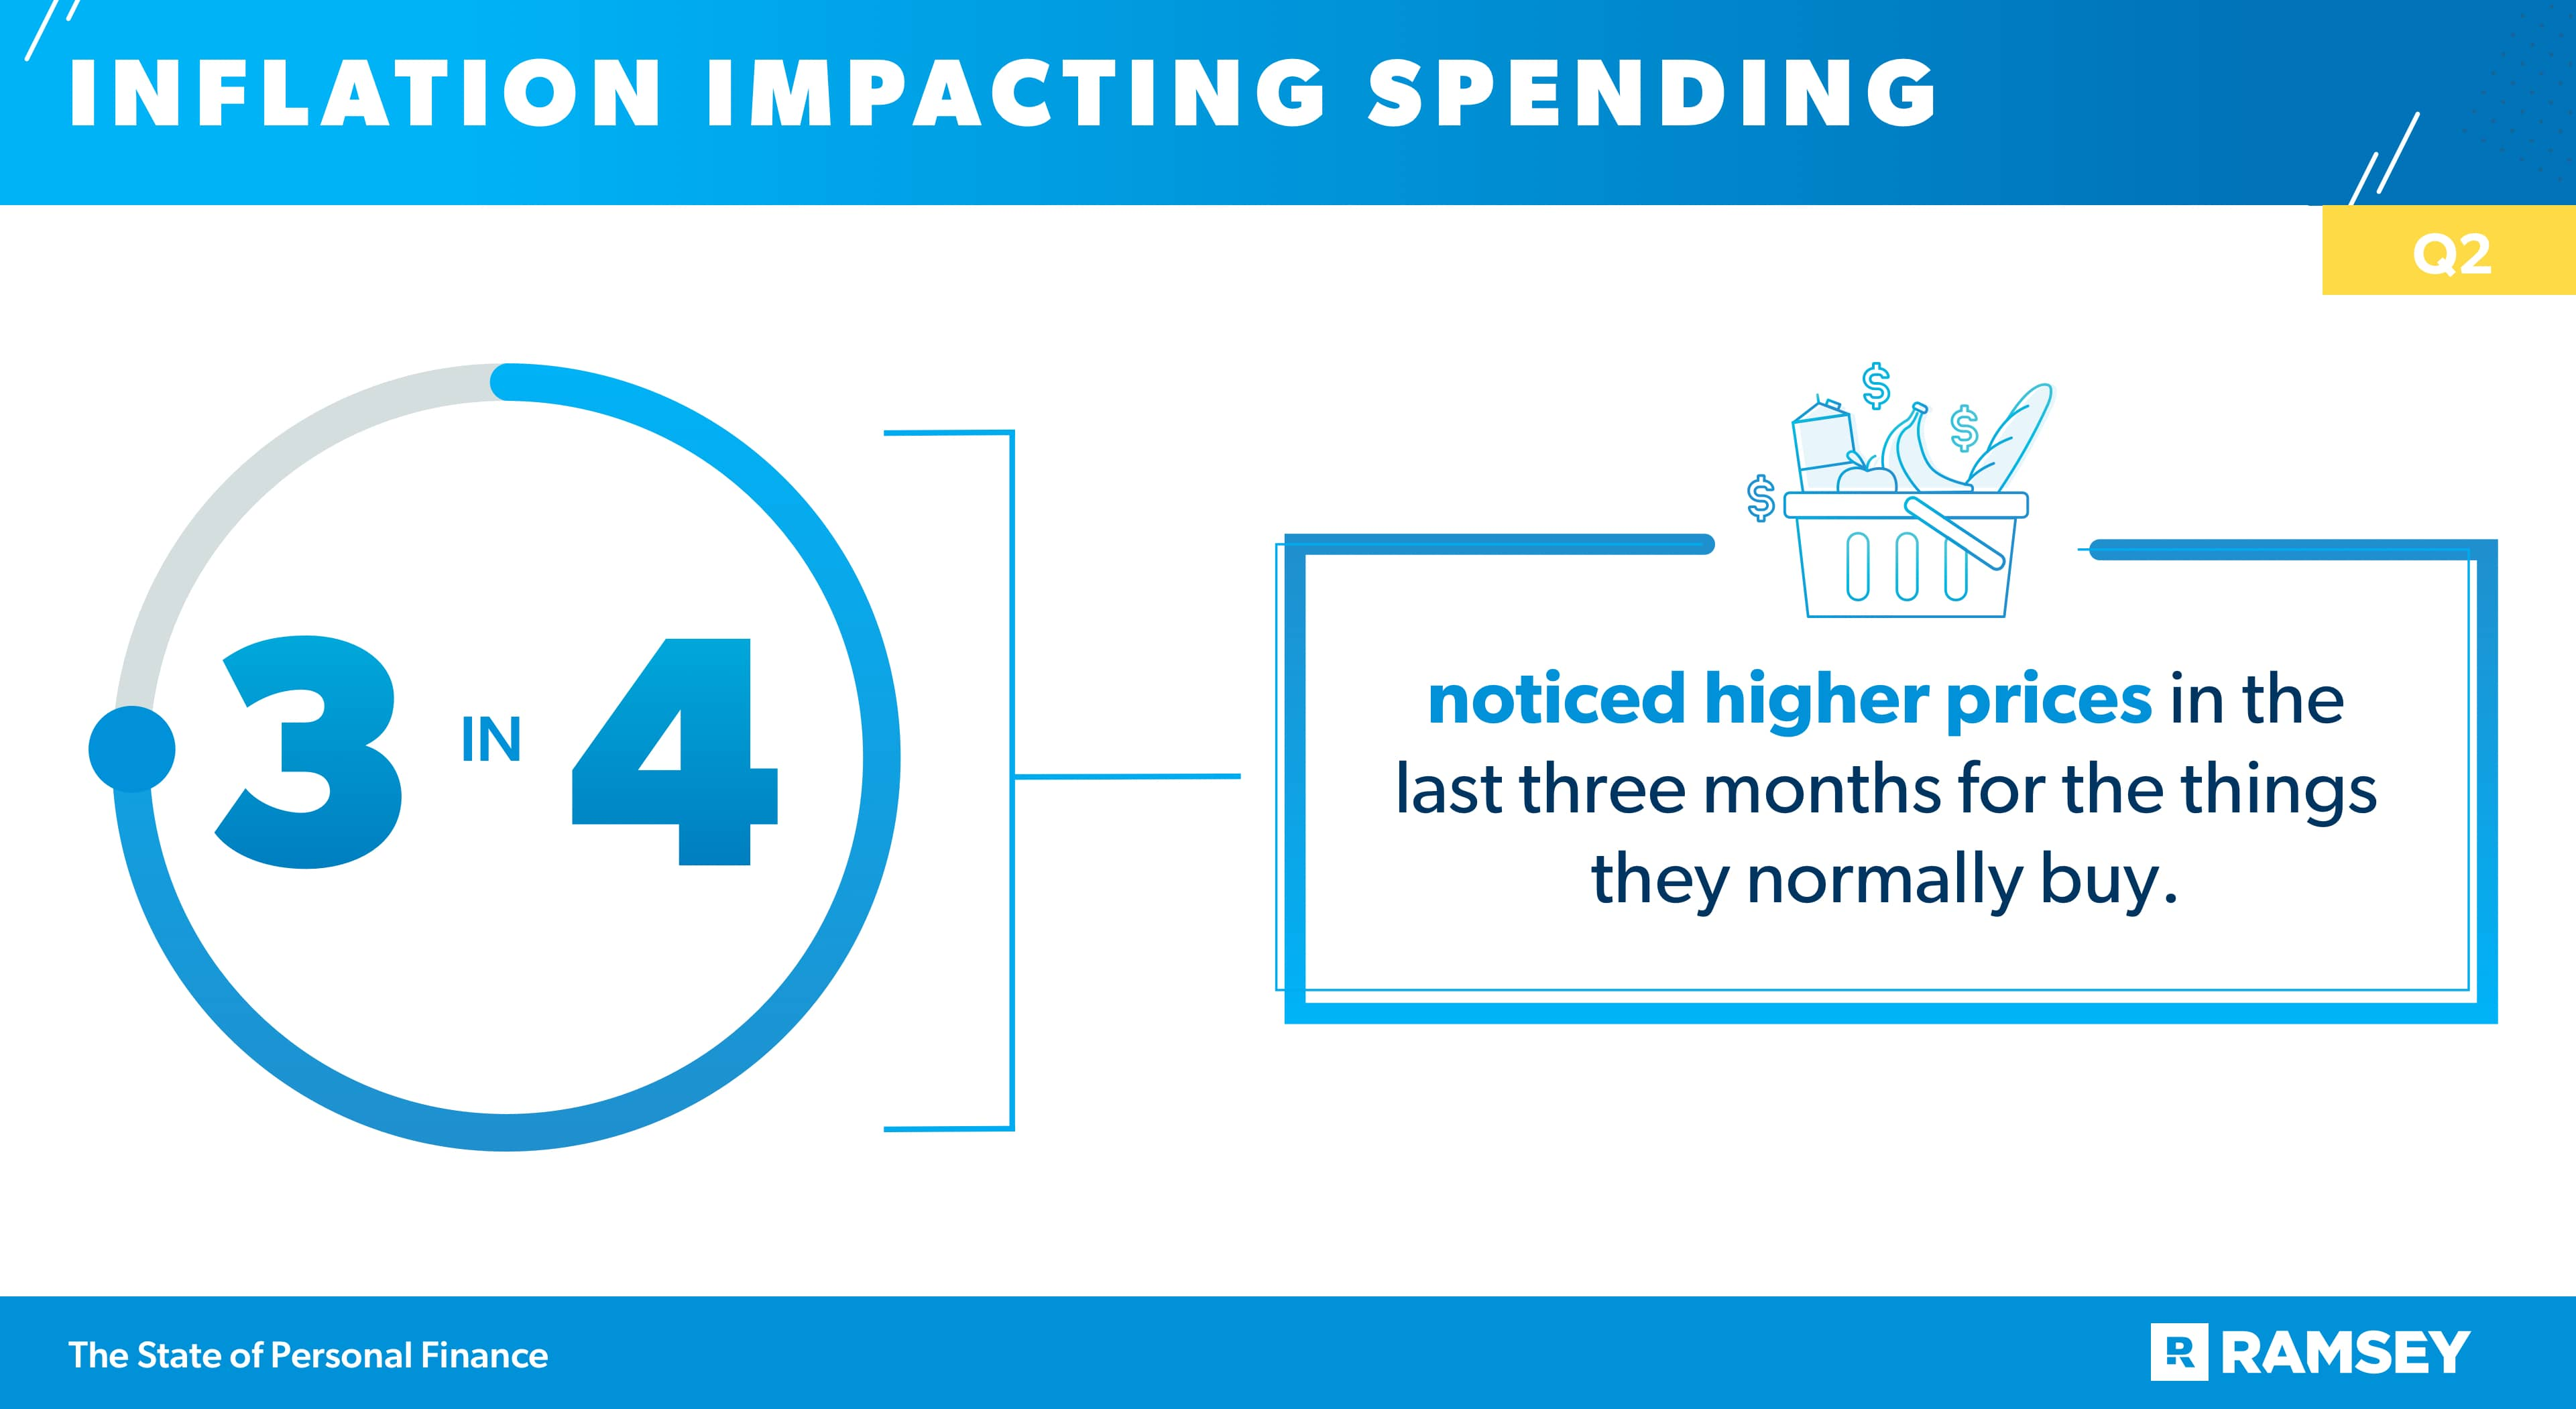 inflation impacting spending